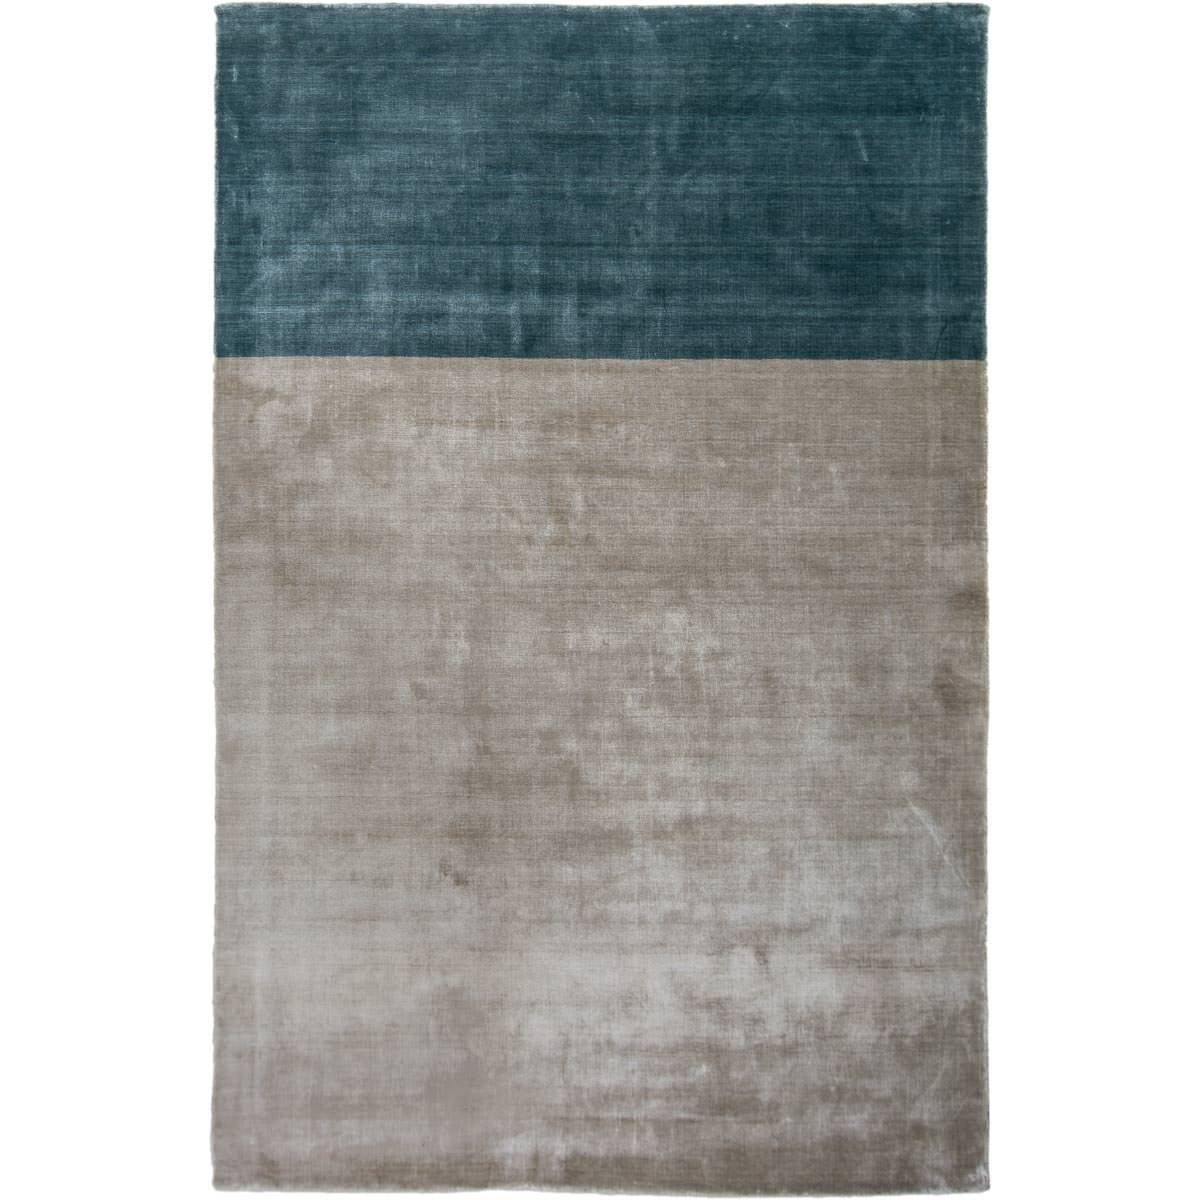 Tuscany Rug 02 Grey/Blue 1